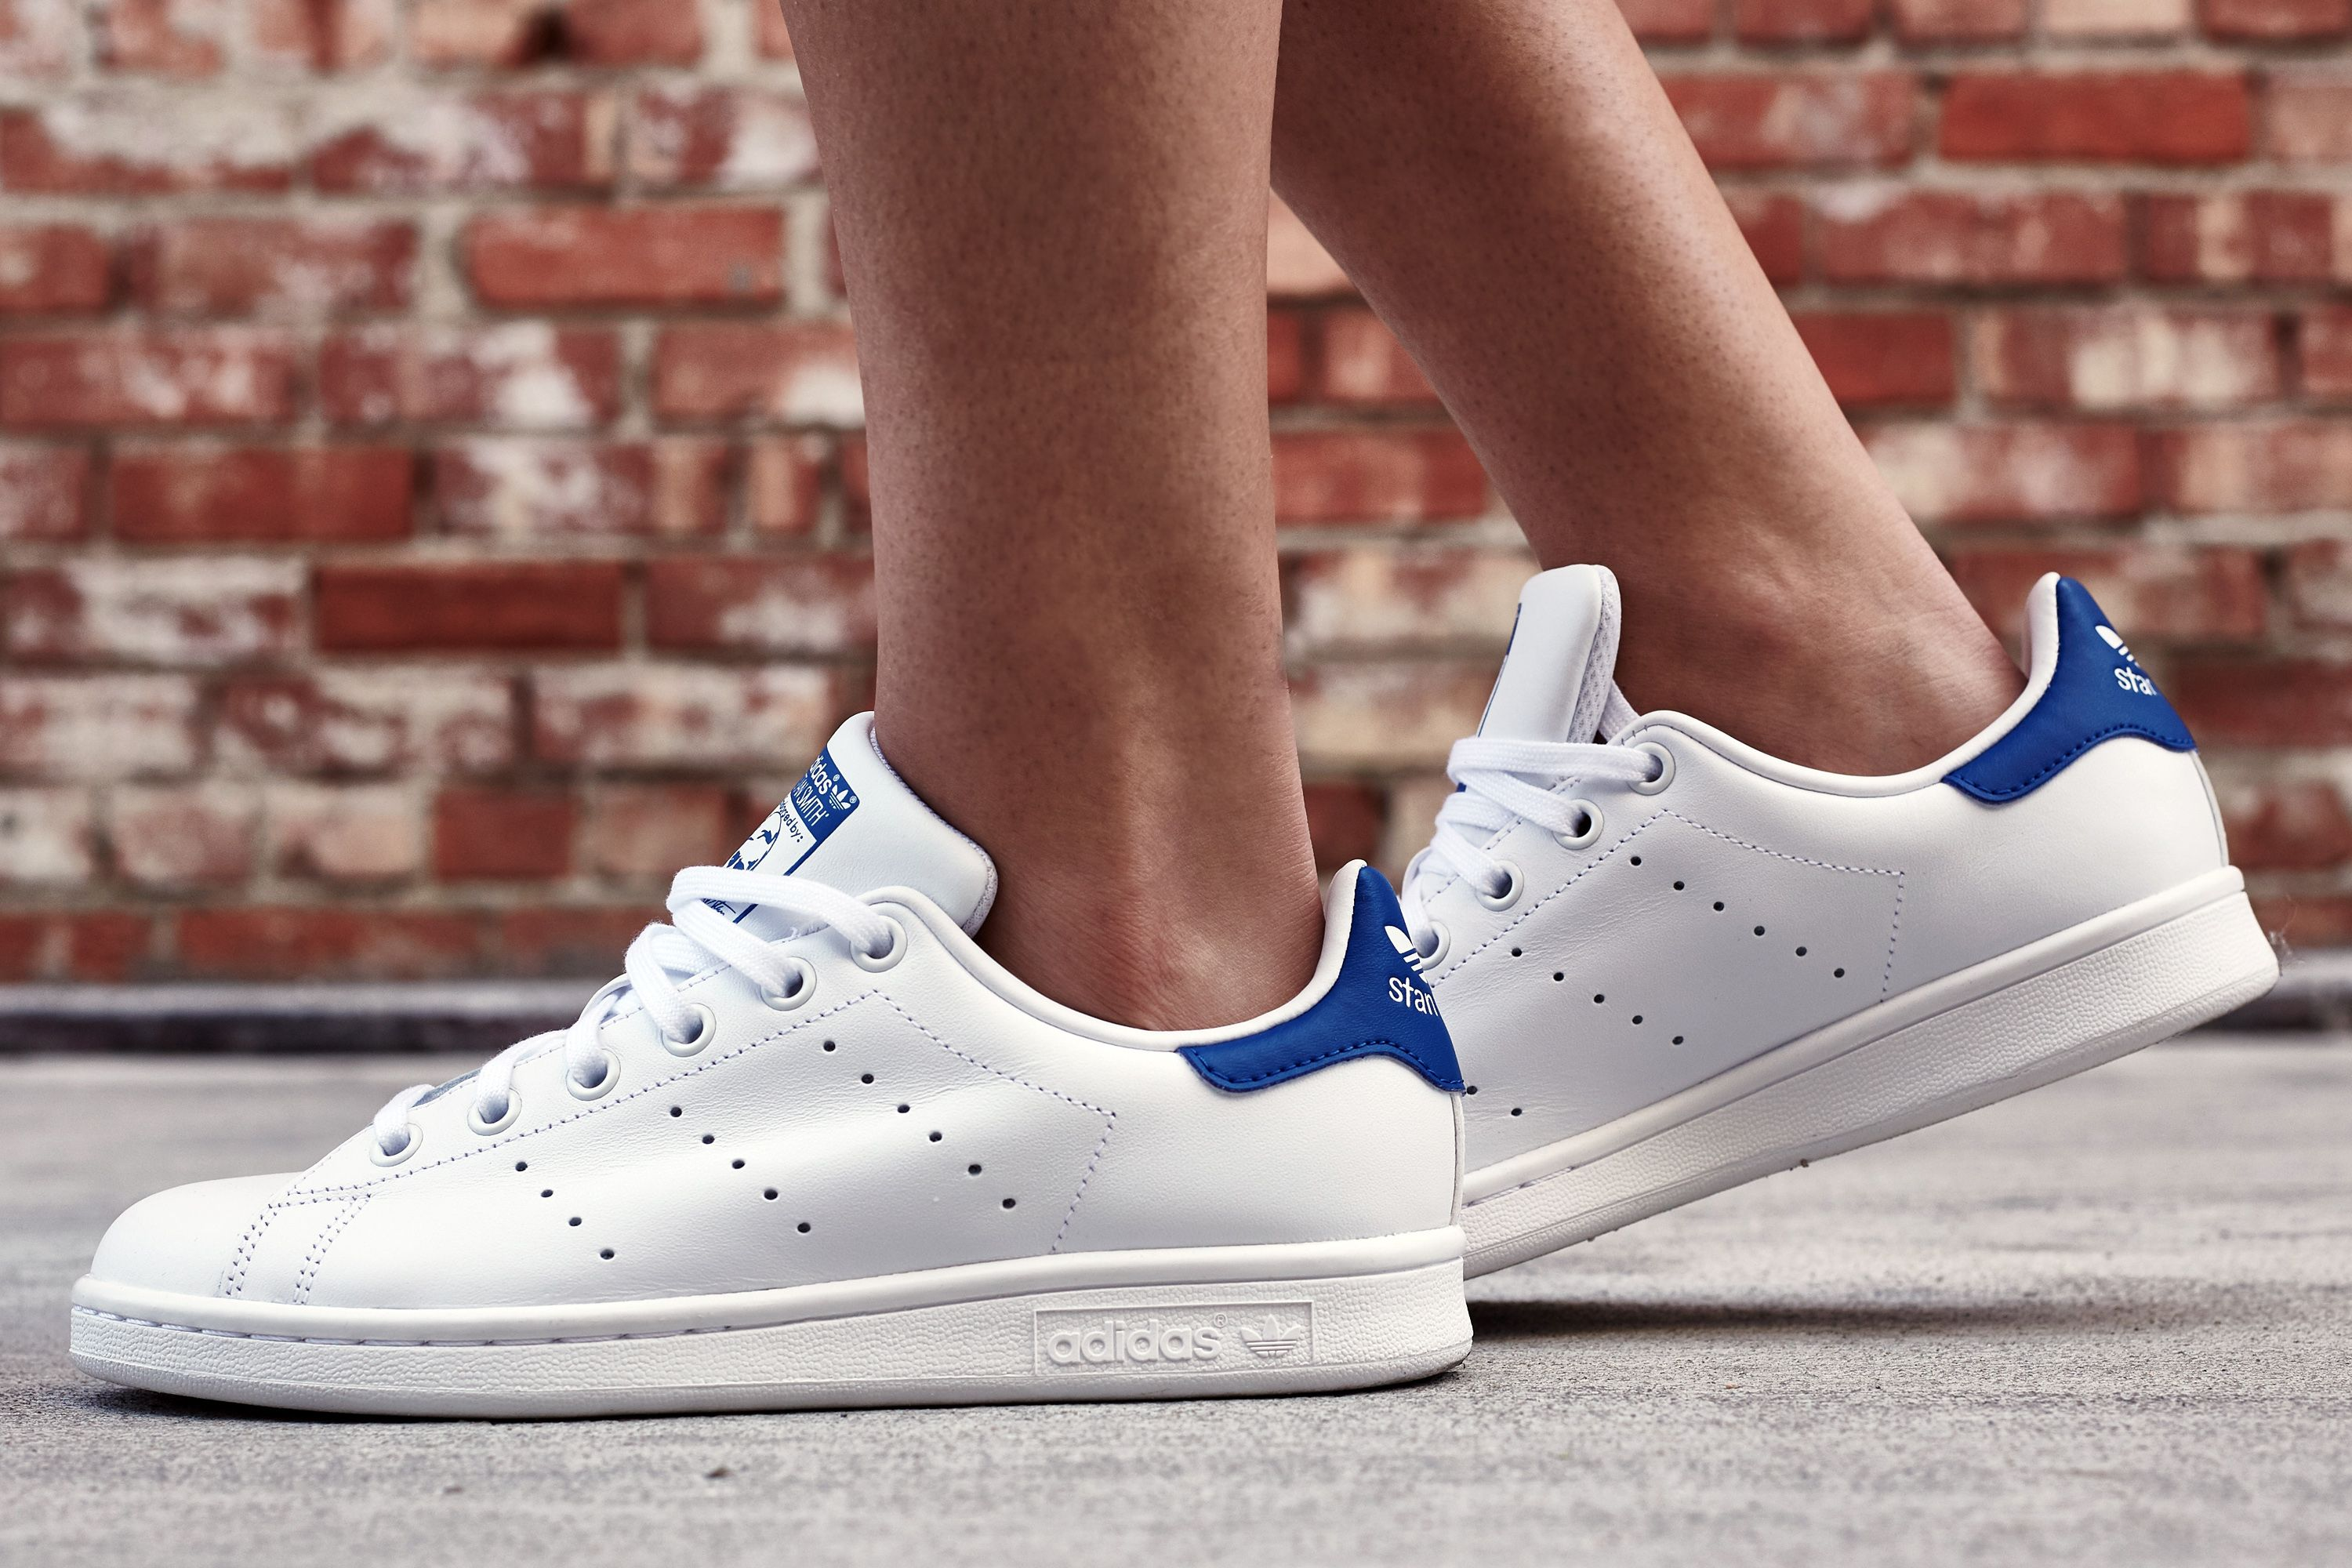 sale retailer 2b5c3 5cbe2 adidas Stan Smith White Royal On-Foot Look